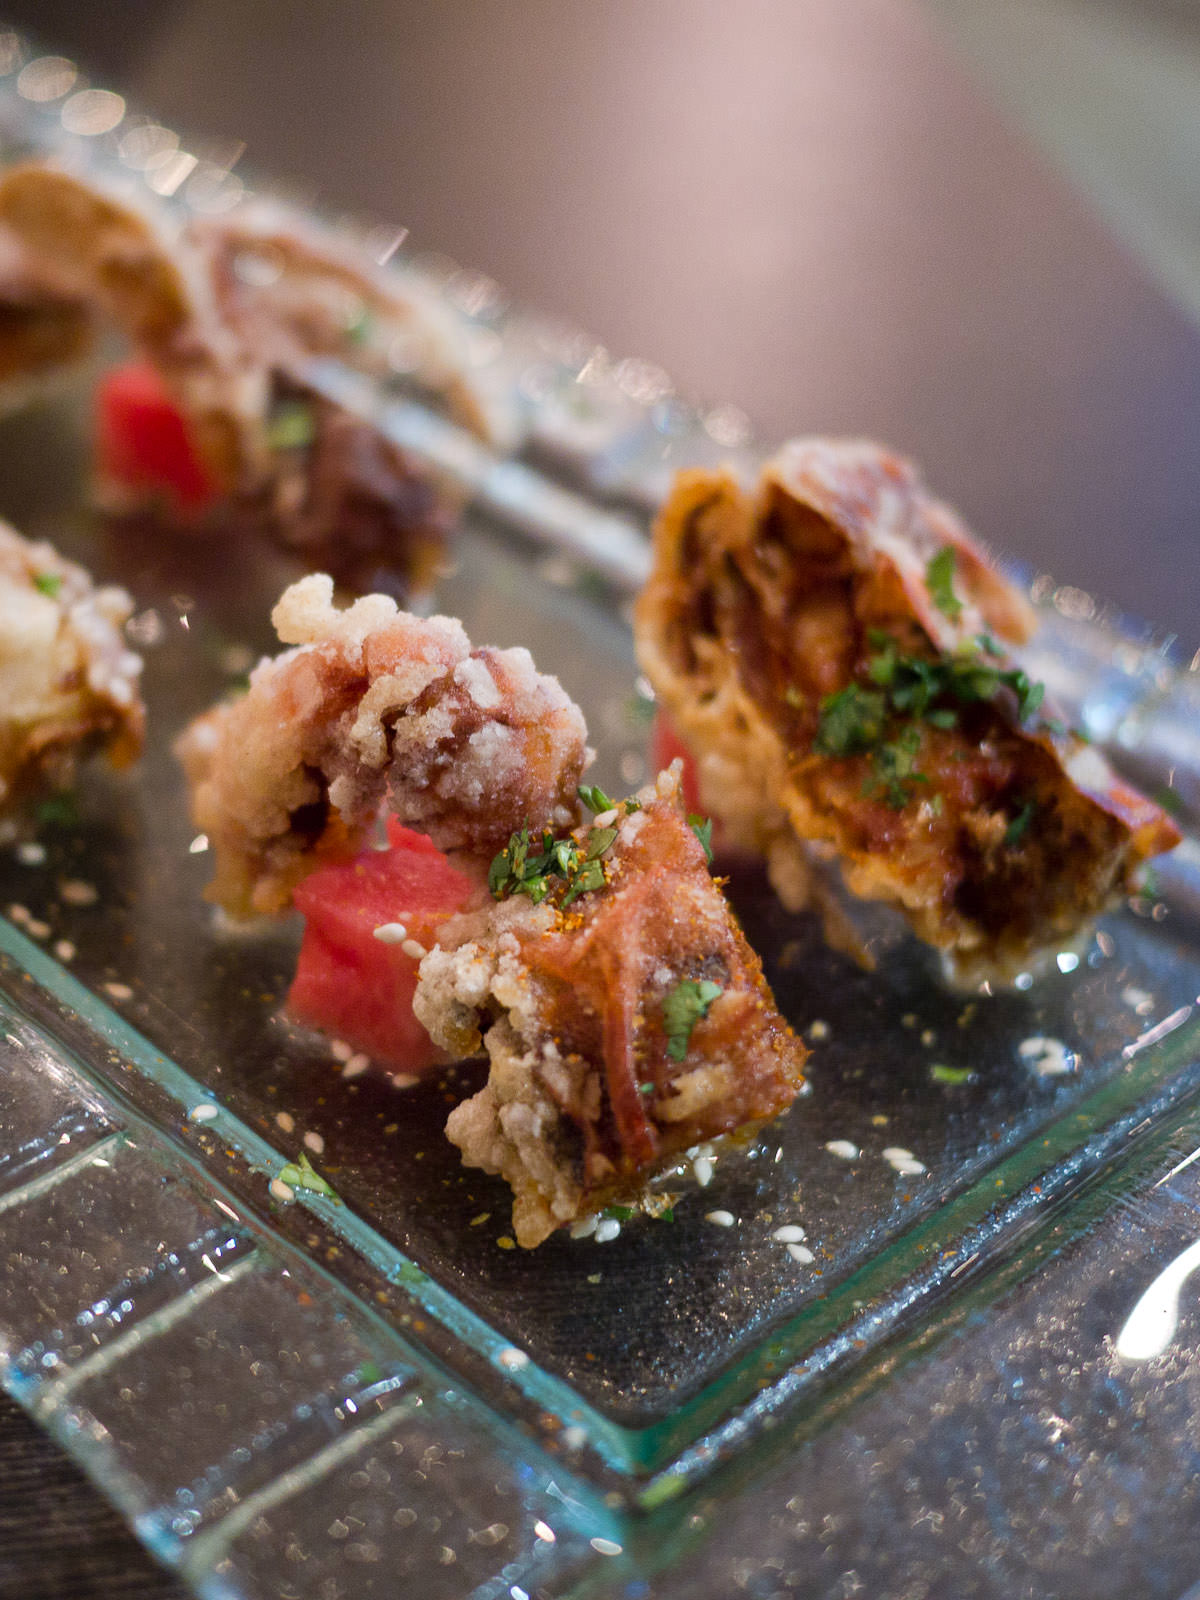 Soft shell crab with water melon